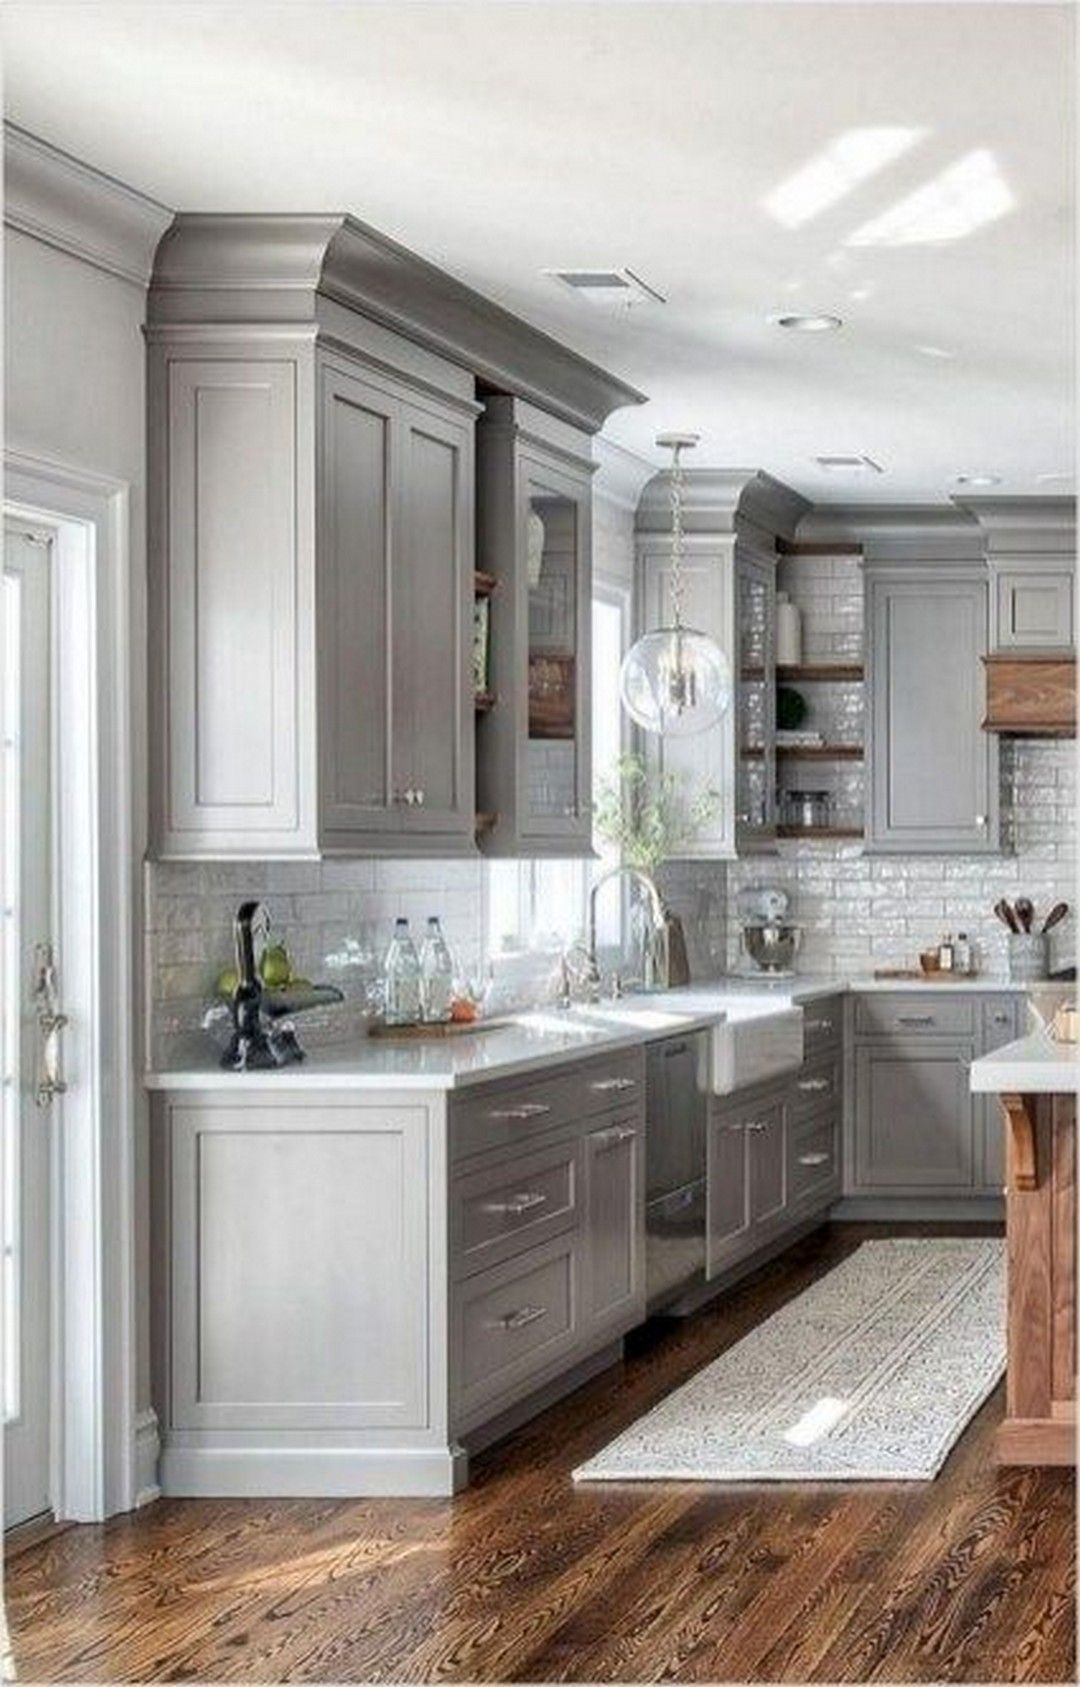 Learn How To Raise Kitchen Cabinets To The Ceiling And Add A Floating Shelf Underneath To Maximize Storage Space In A Small Kitchen Kitchen Cabinet Design New Kitchen Cabinets Refacing Kitchen